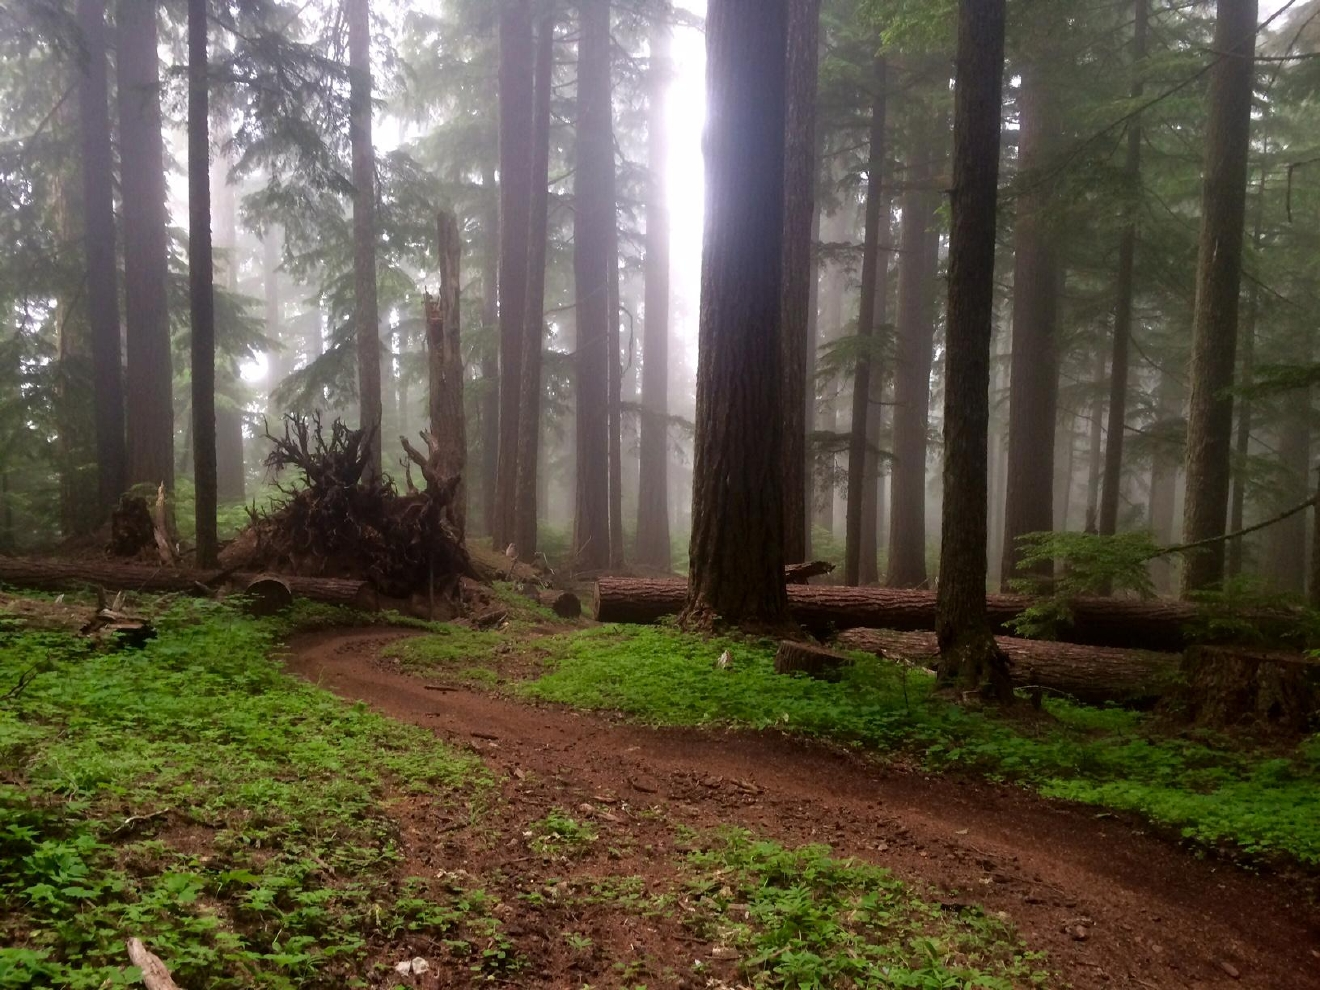 Hiking trail near Oakridge (Jenna Berman/CC by 2.0)